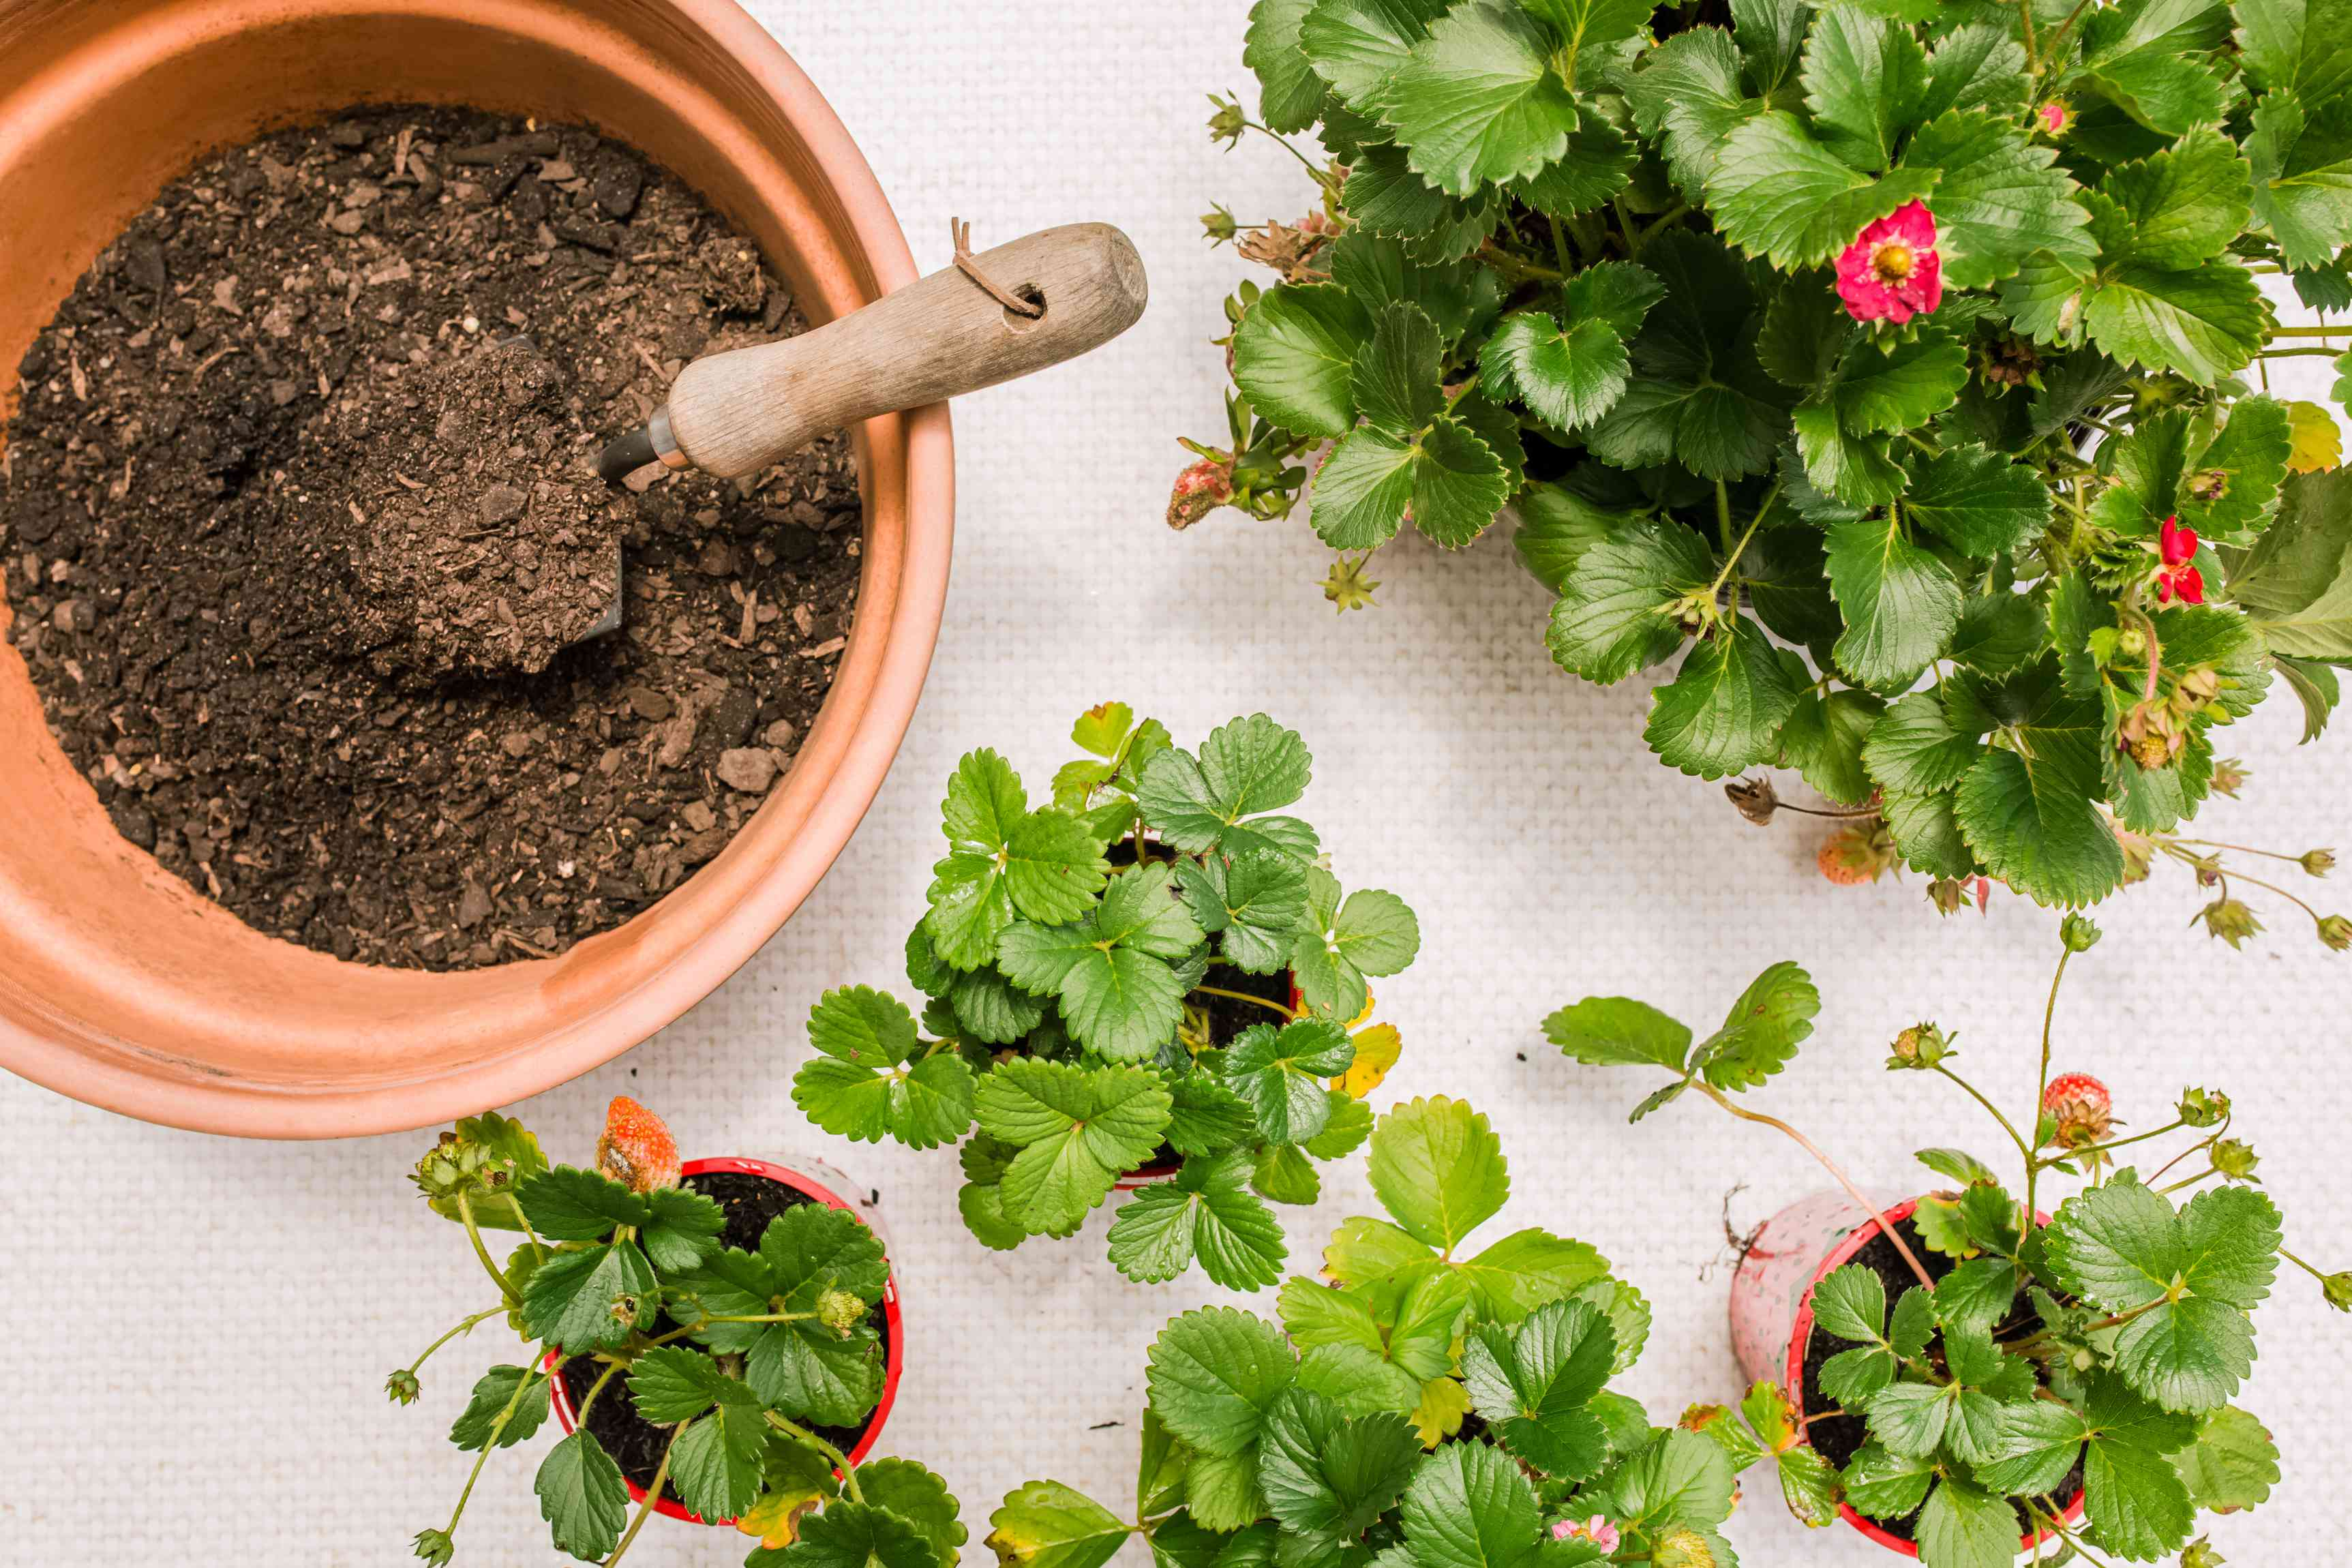 preparing your container with soil